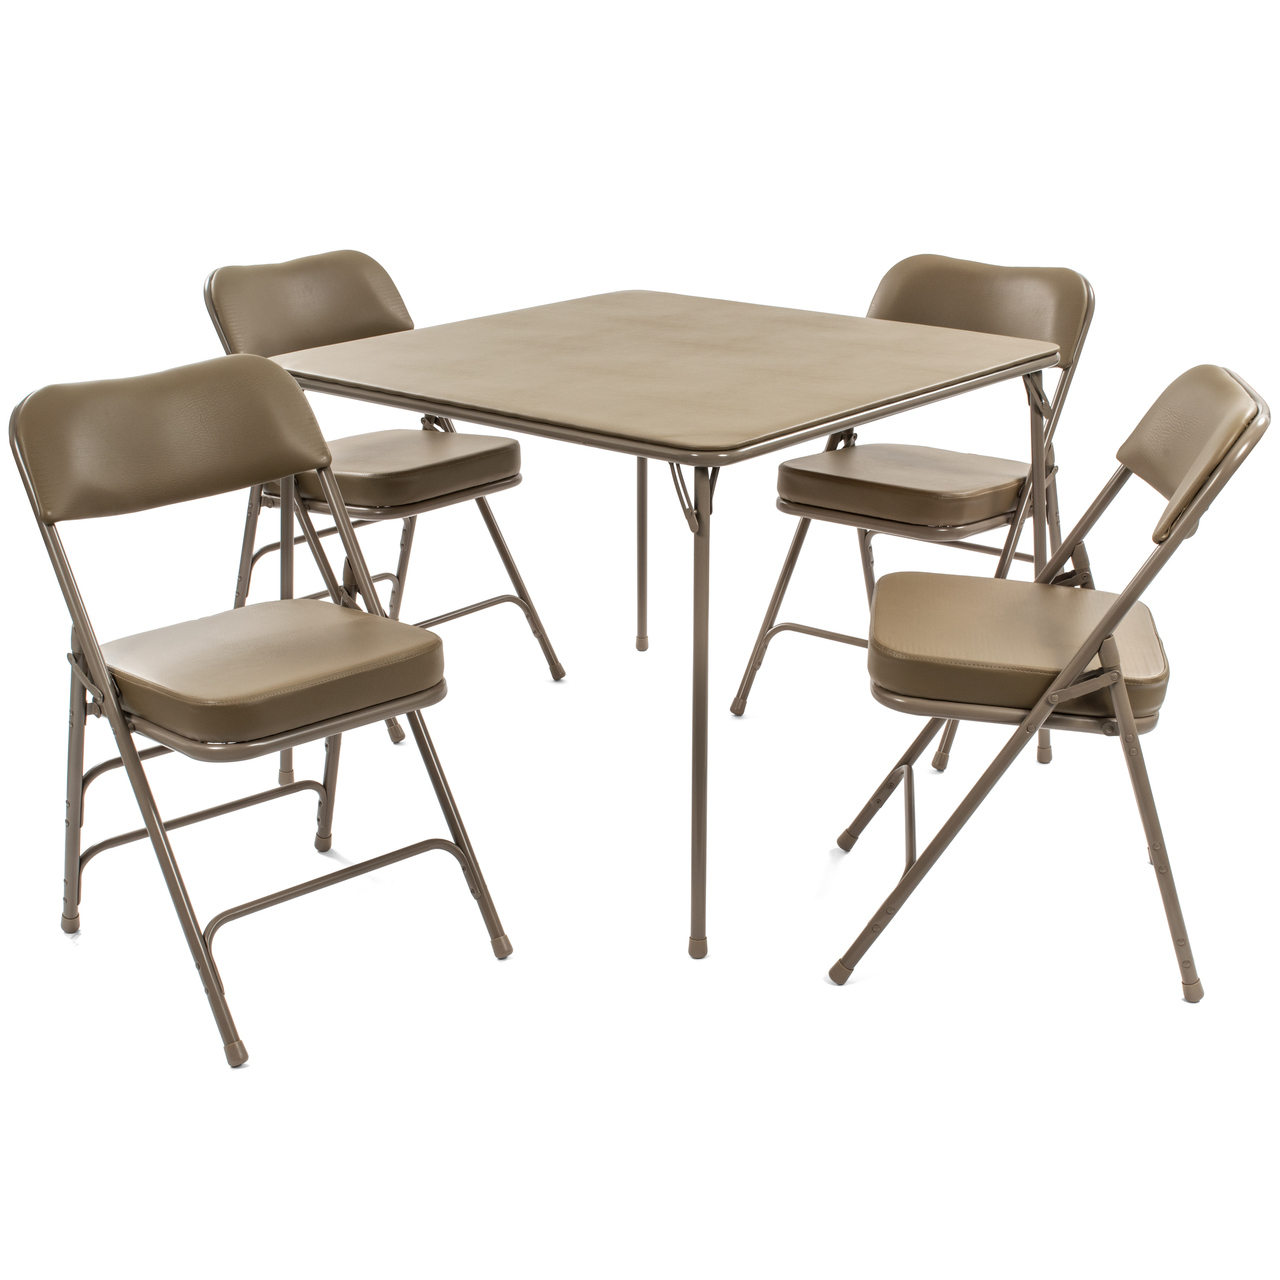 5pc Xl Series Folding Card Table And Ultra Thick Padded Chair Set Beige